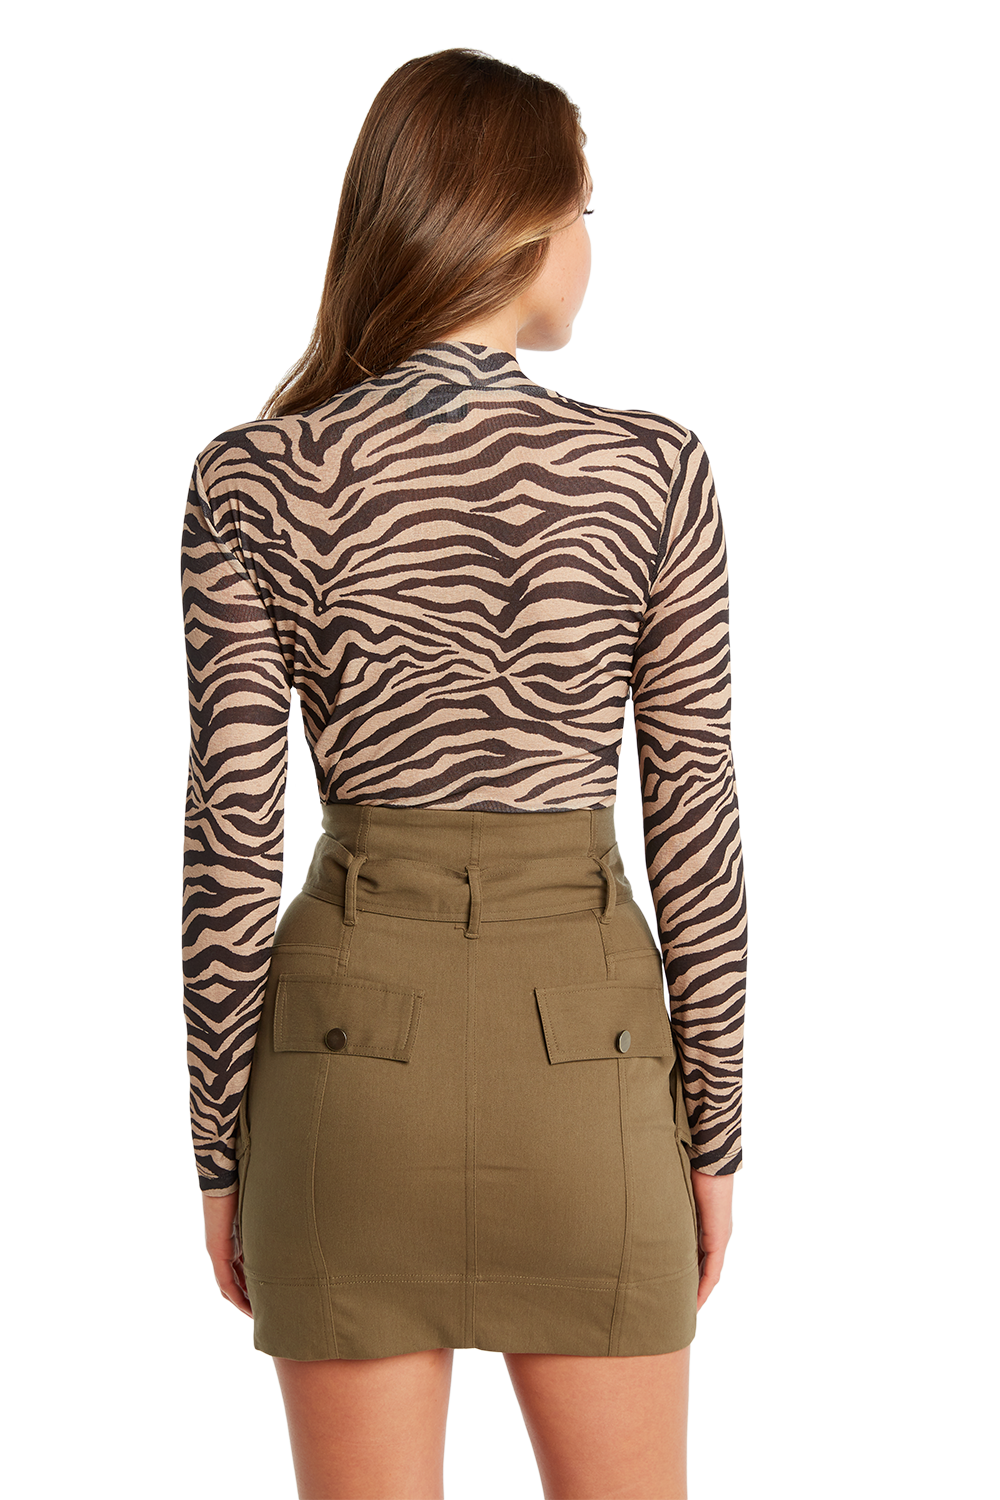 ZEBRA MESH TOP in colour TAPIOCA